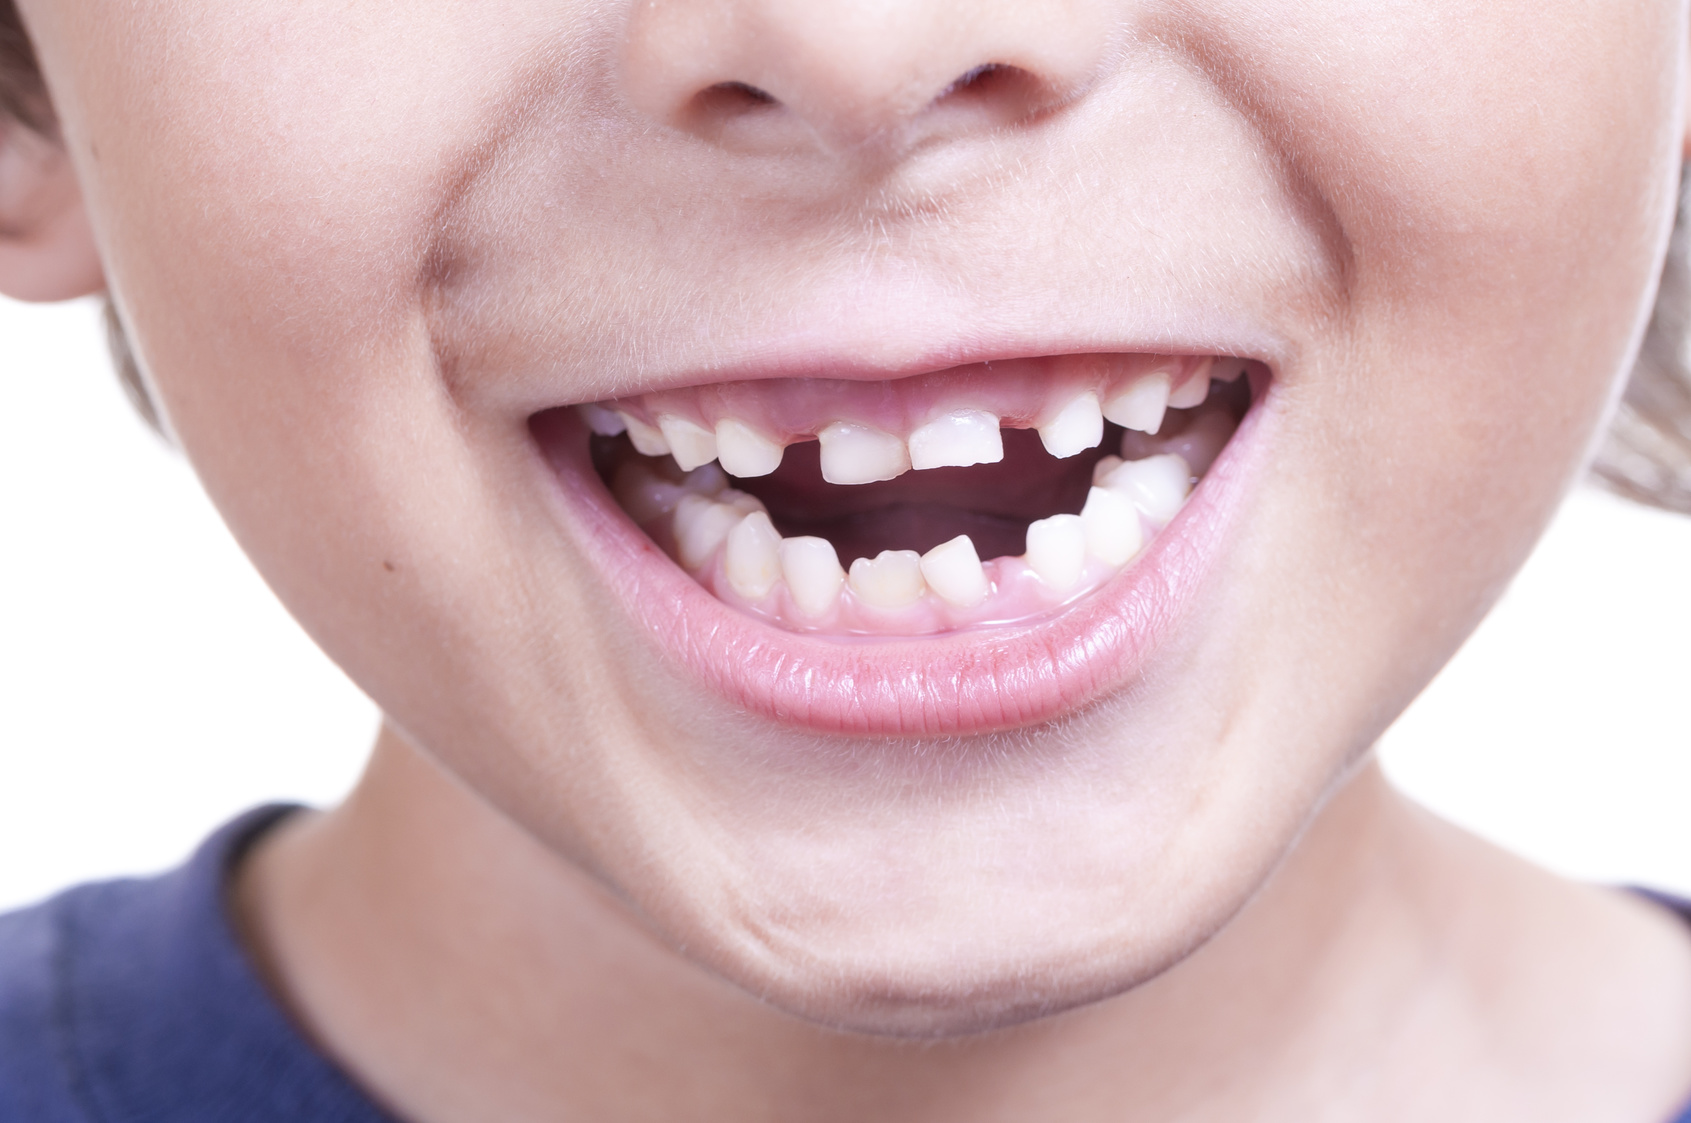 child missing primary teeth